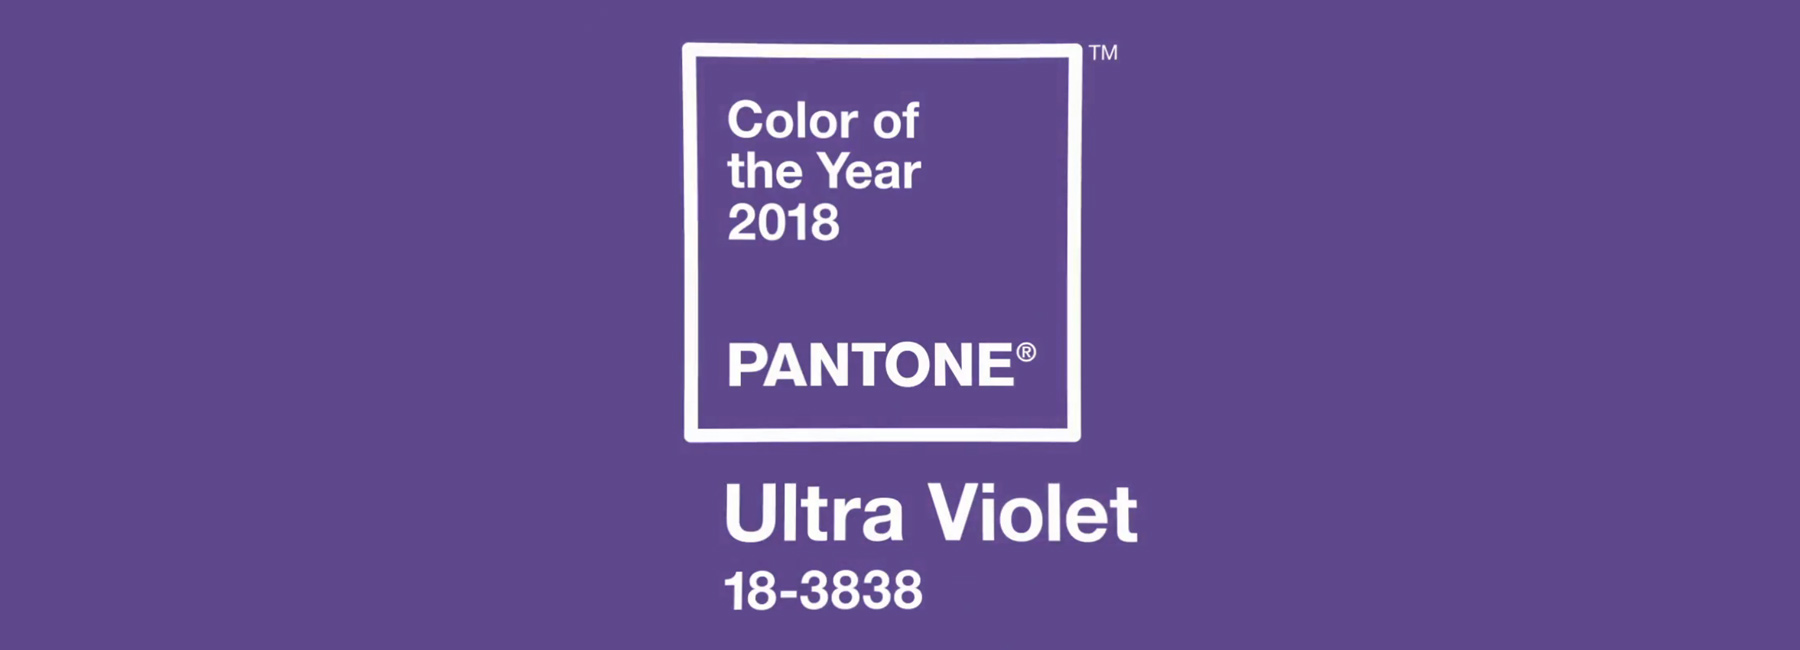 Pantone Color of the Year 2018.jpg